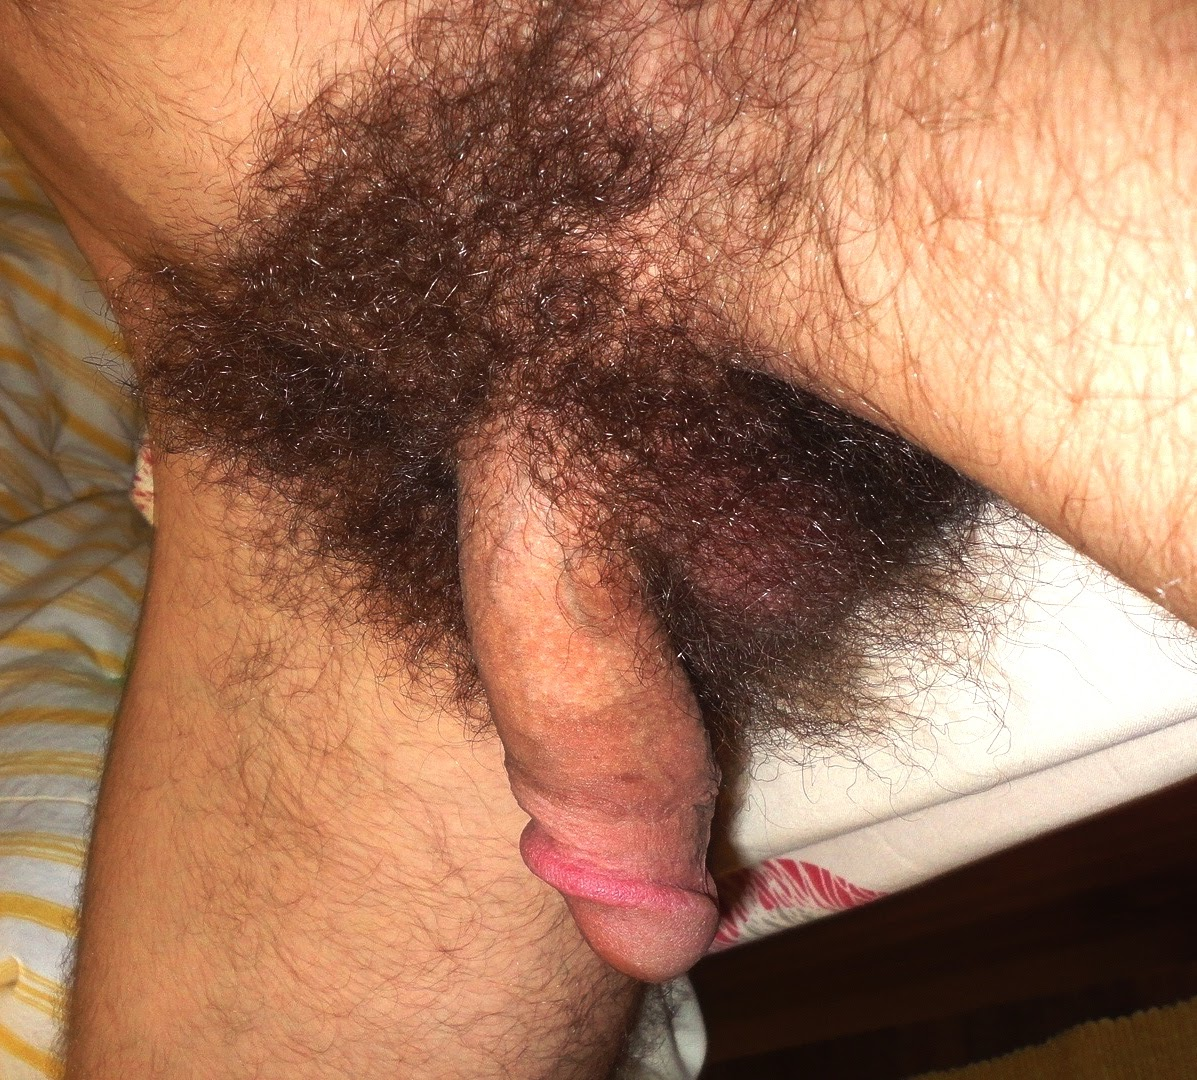 Fuck me you dirty slut